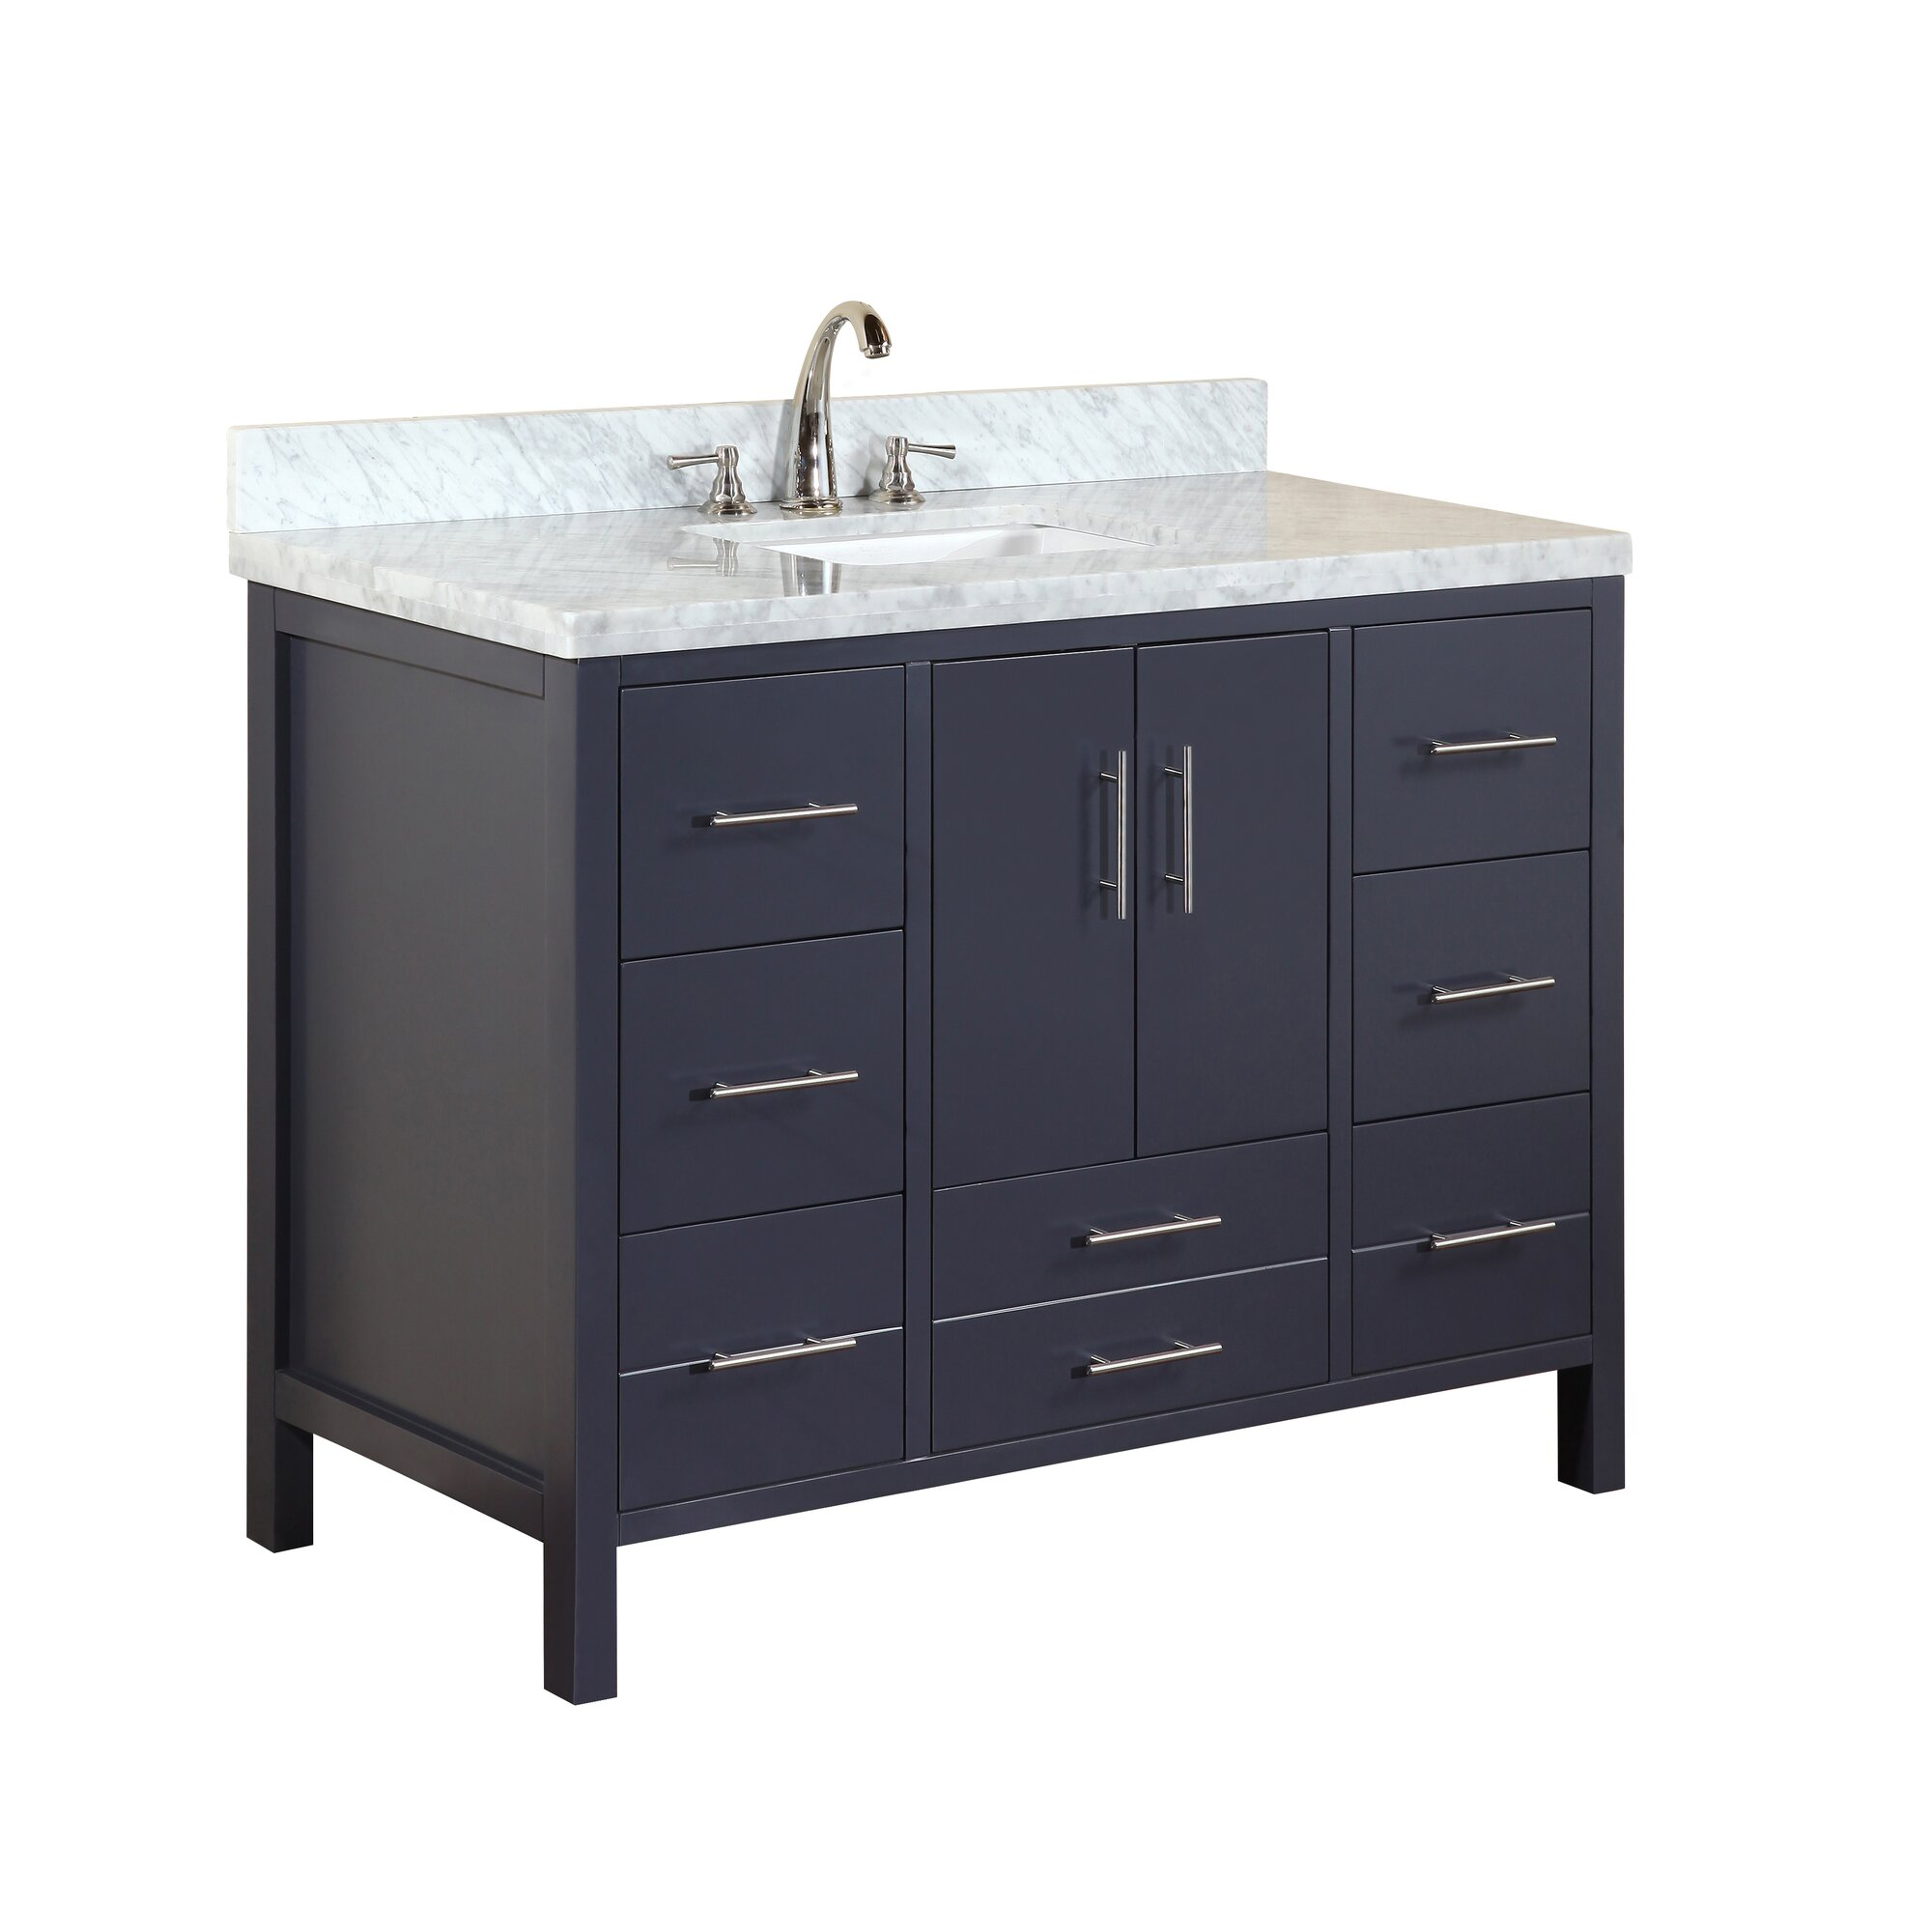 Kbc California 48 Single Bathroom Vanity Set Reviews